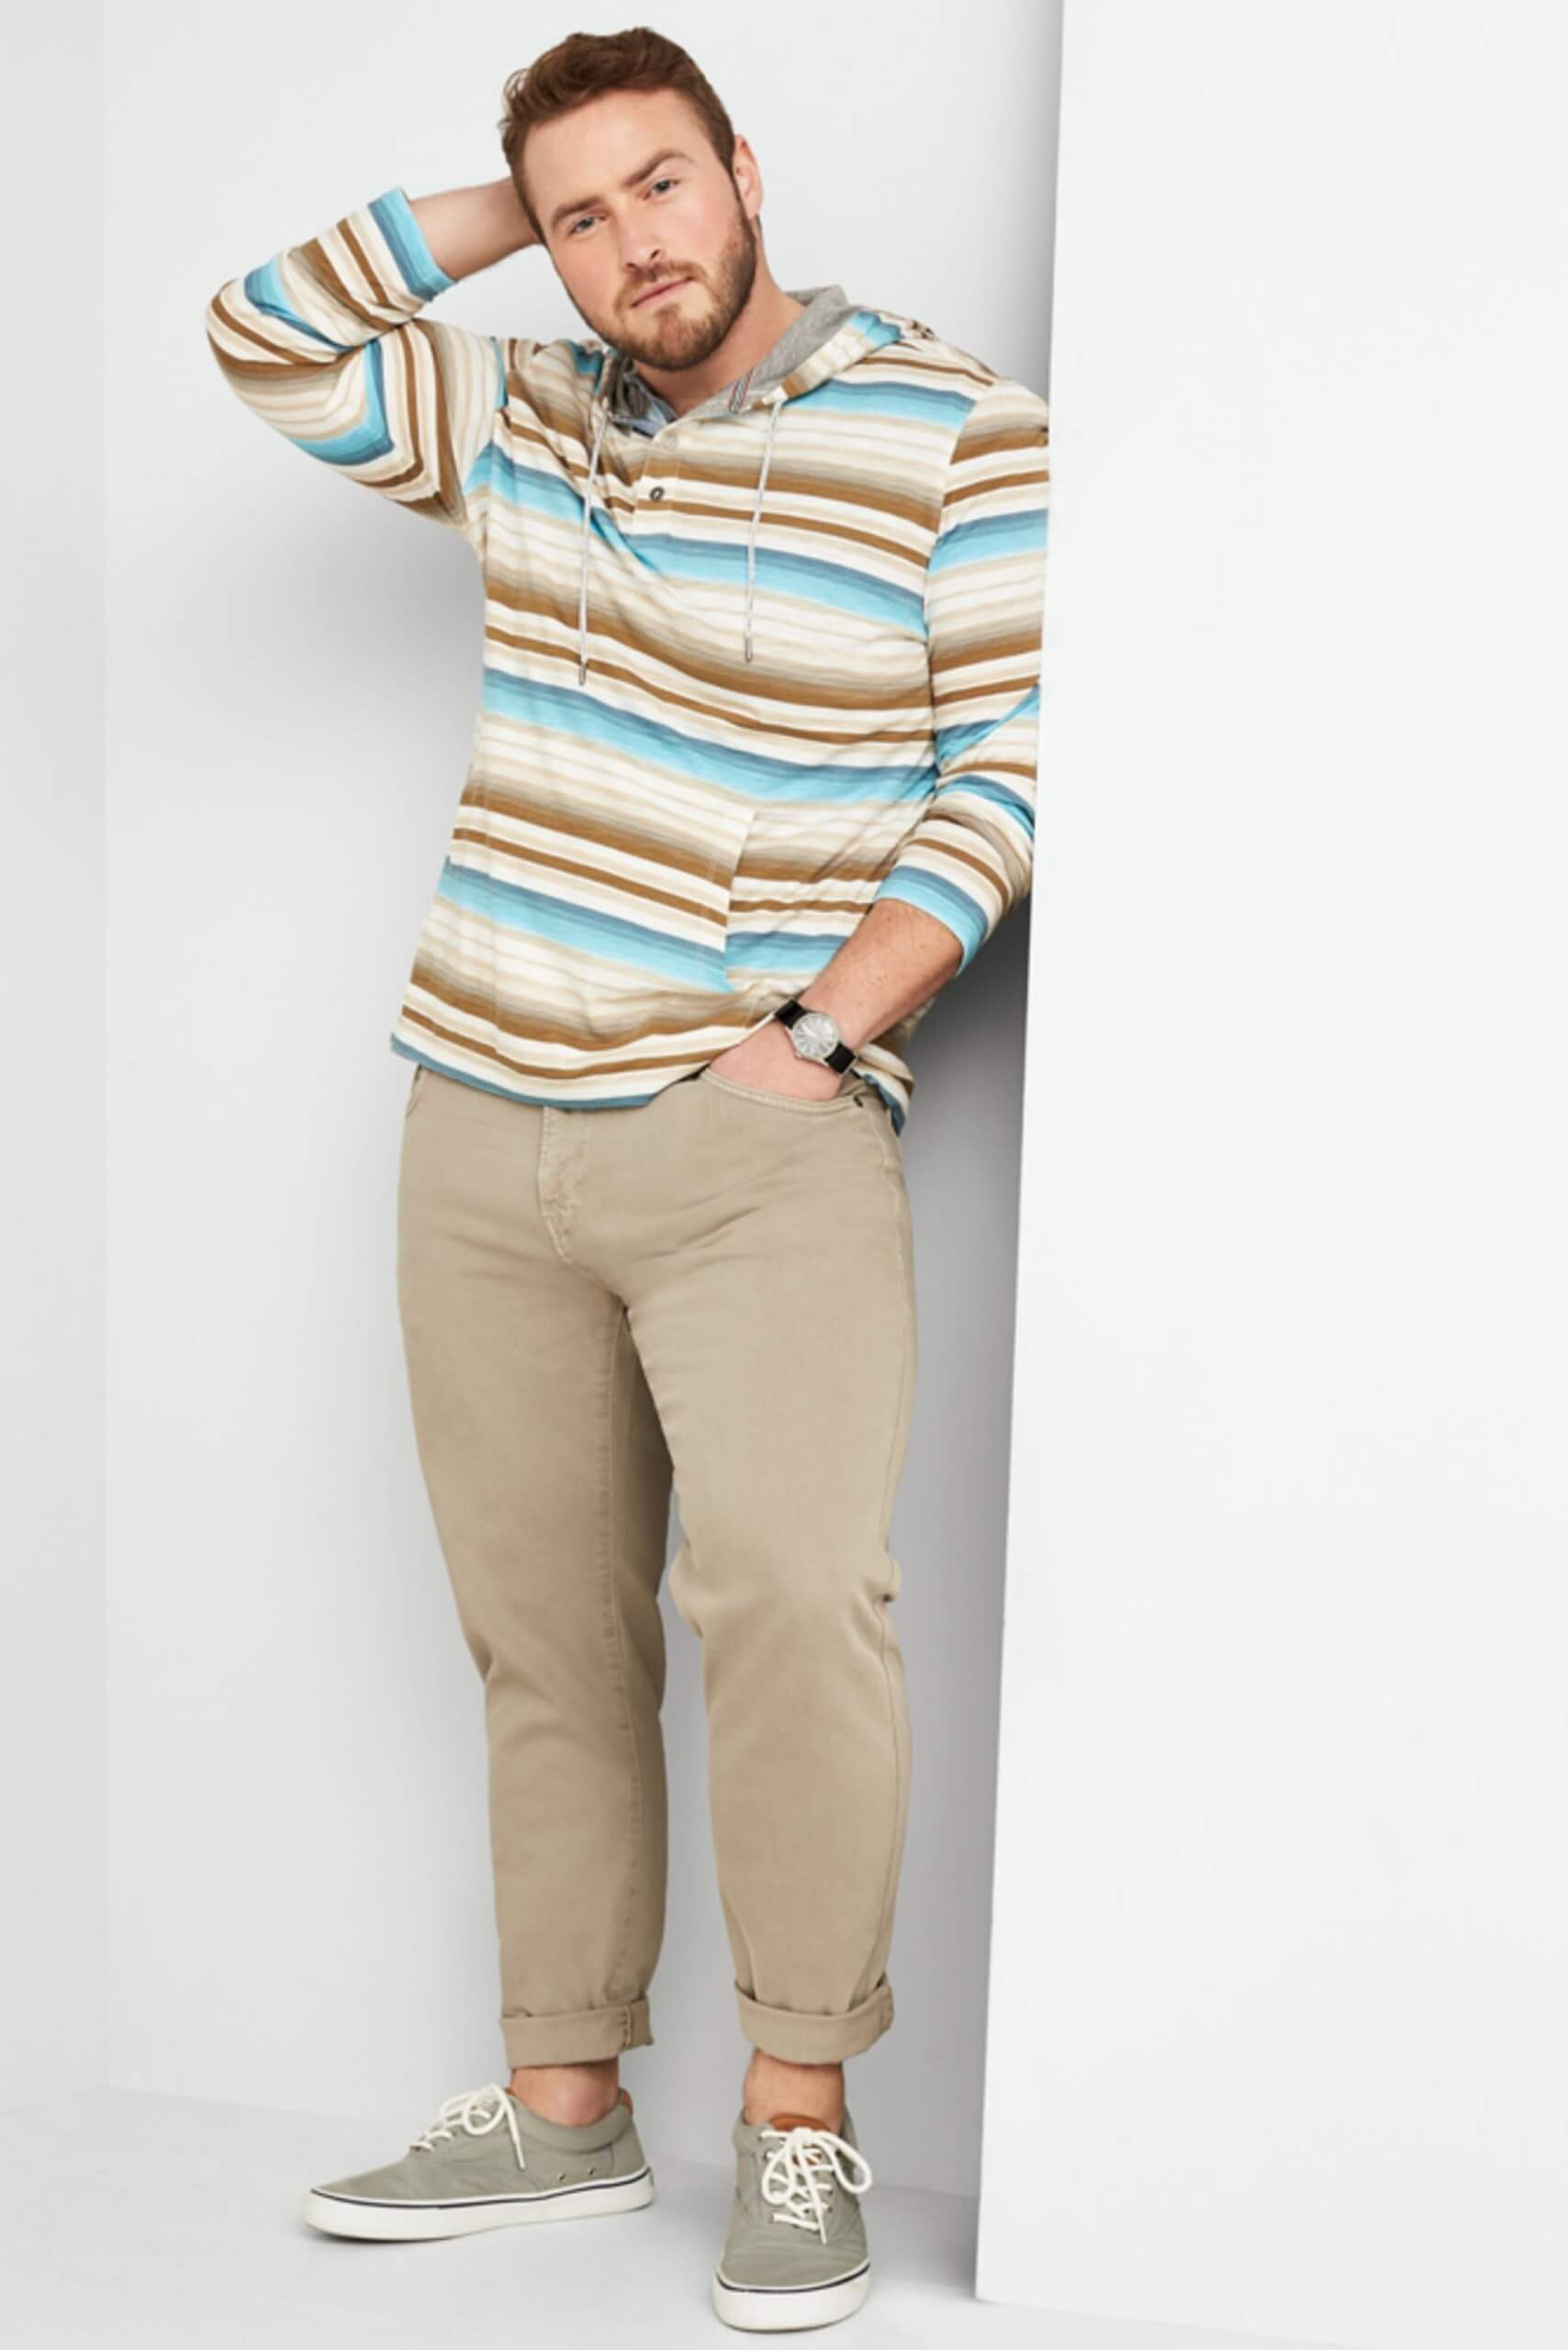 Stitch Fix Men's model wearing multi-colored striped hoodie over a light grey henley with khaki slim-fit jeans and grey canvas sneakers.